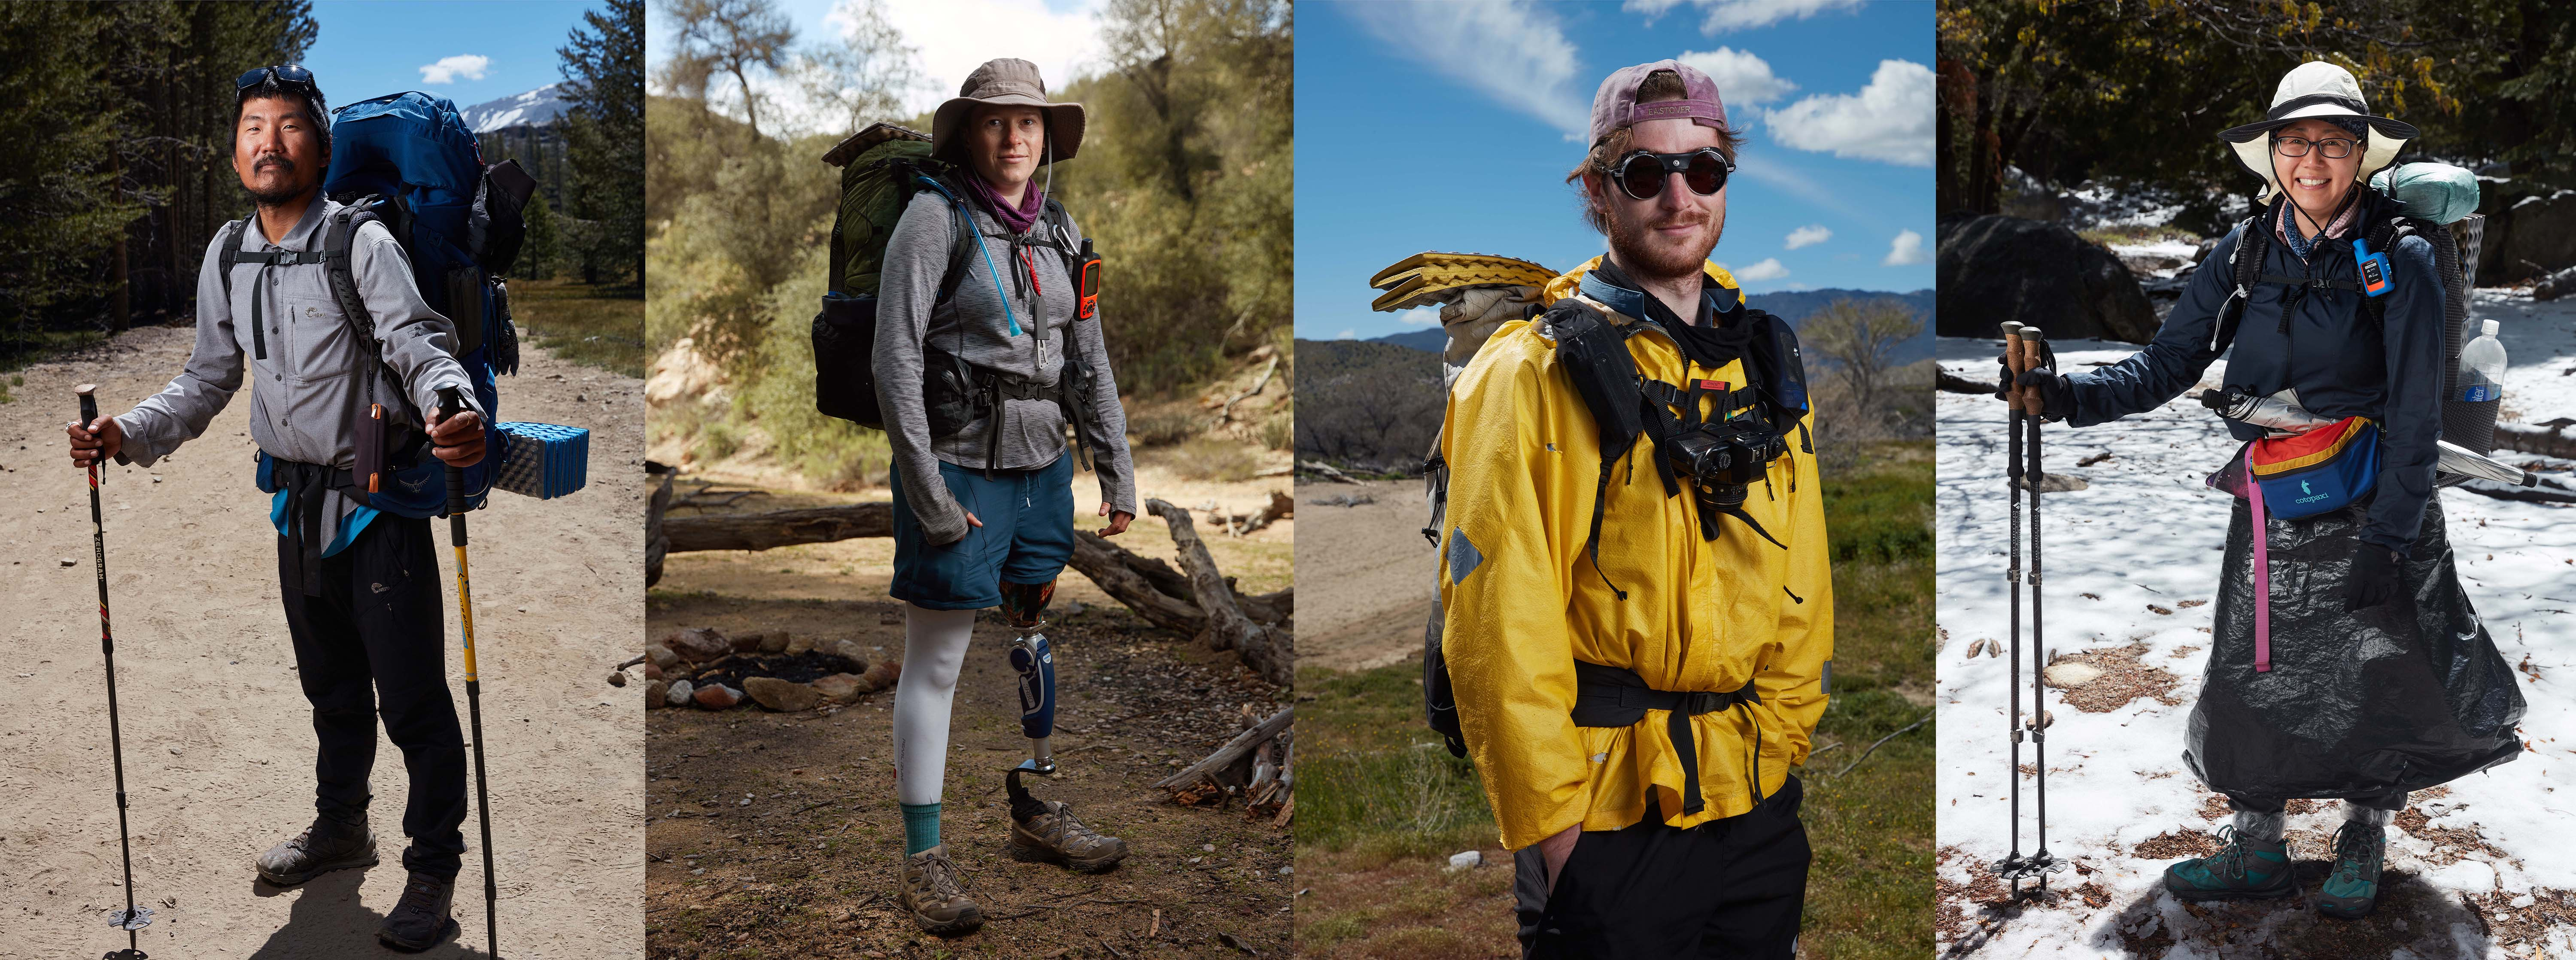 PCT Portraits: Capturing Thru-Hikers On Their 2,650 Mile